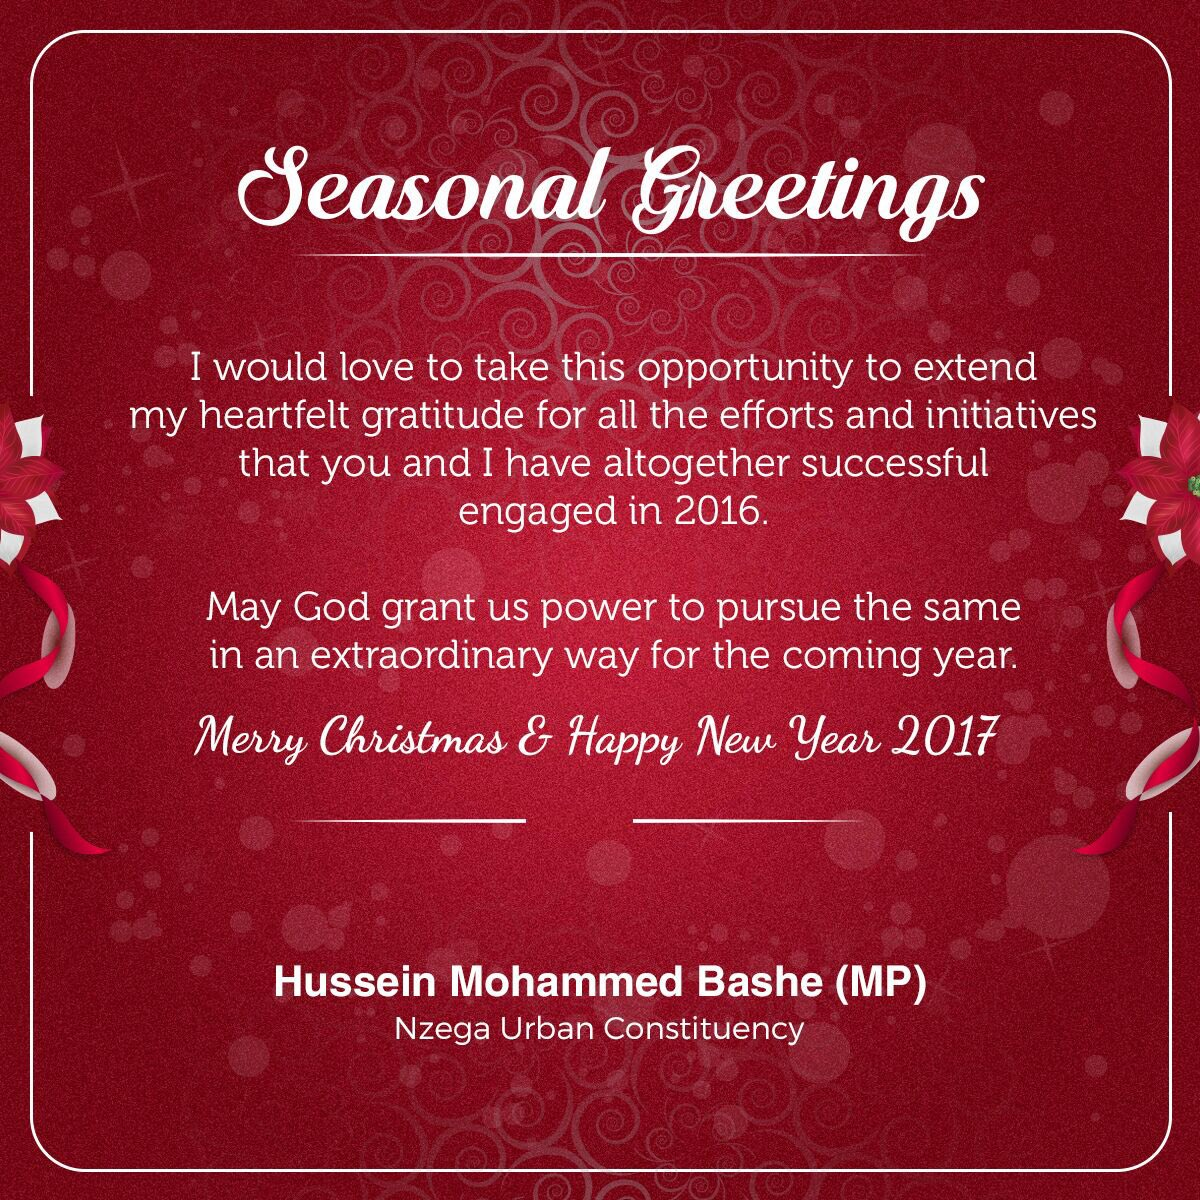 Hussein M Bashe On Twitter Merry Christmas Greetings From Me And